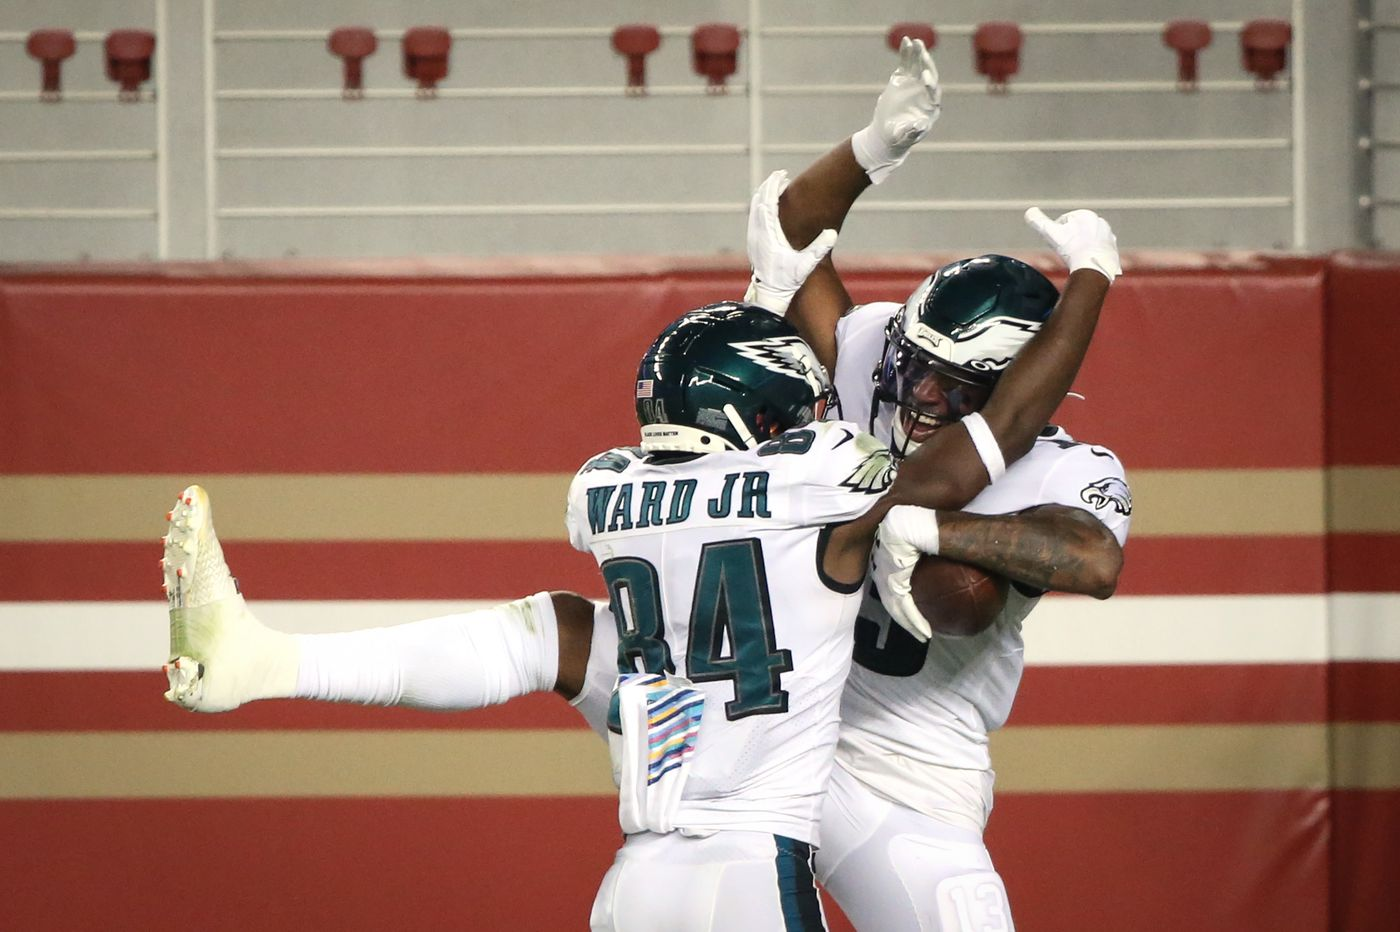 Five takeaways from the Eagles' come-from-behind win against the 49ers